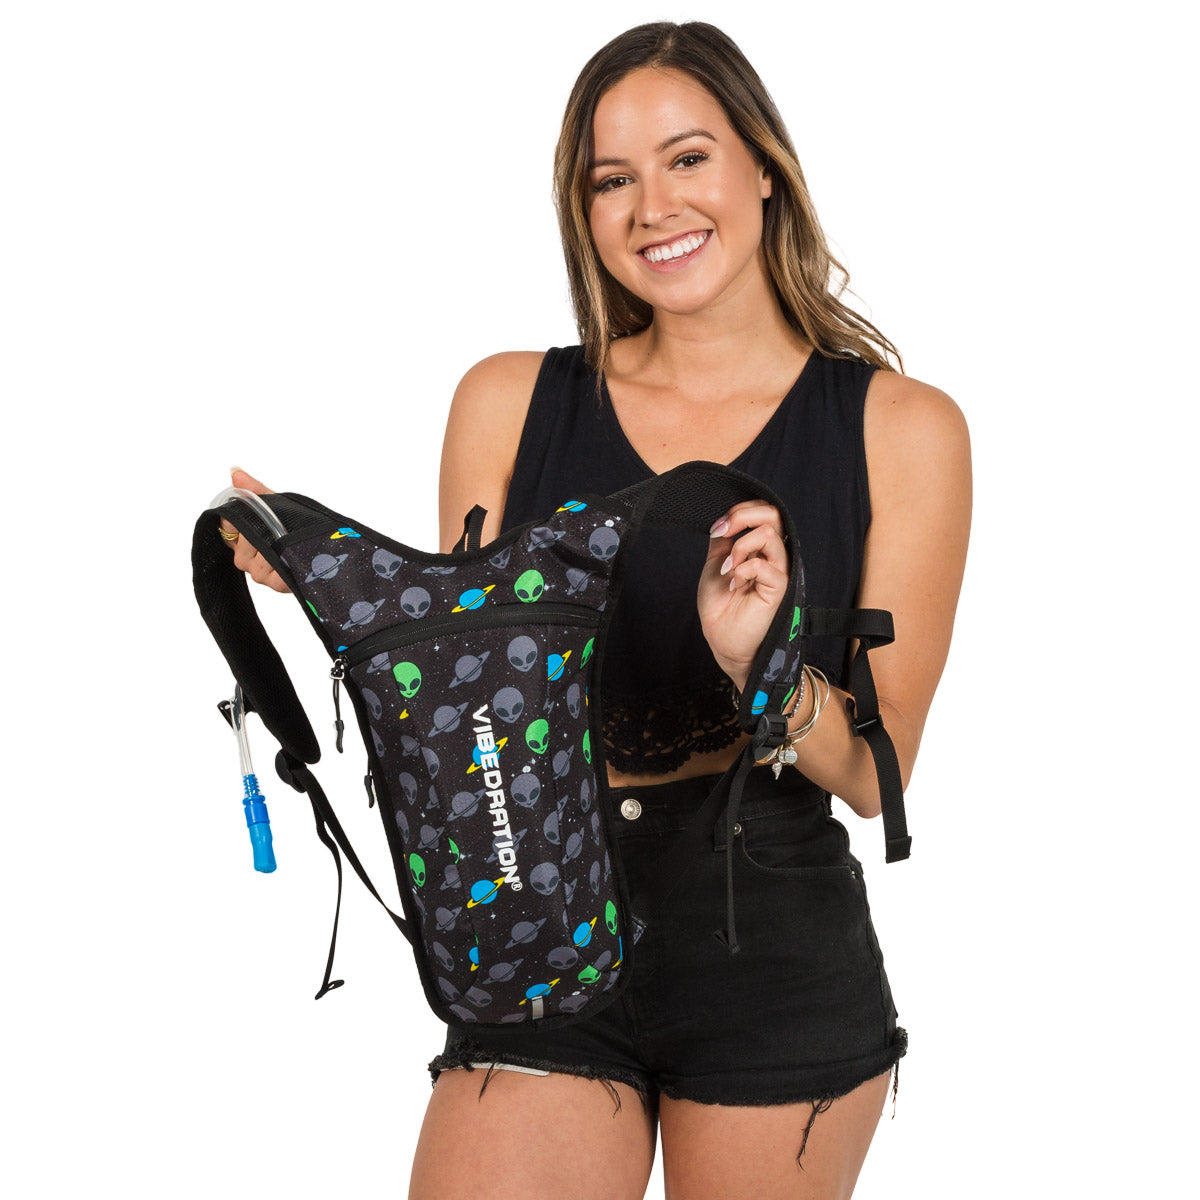 Rave Hydration Pack with Aliens